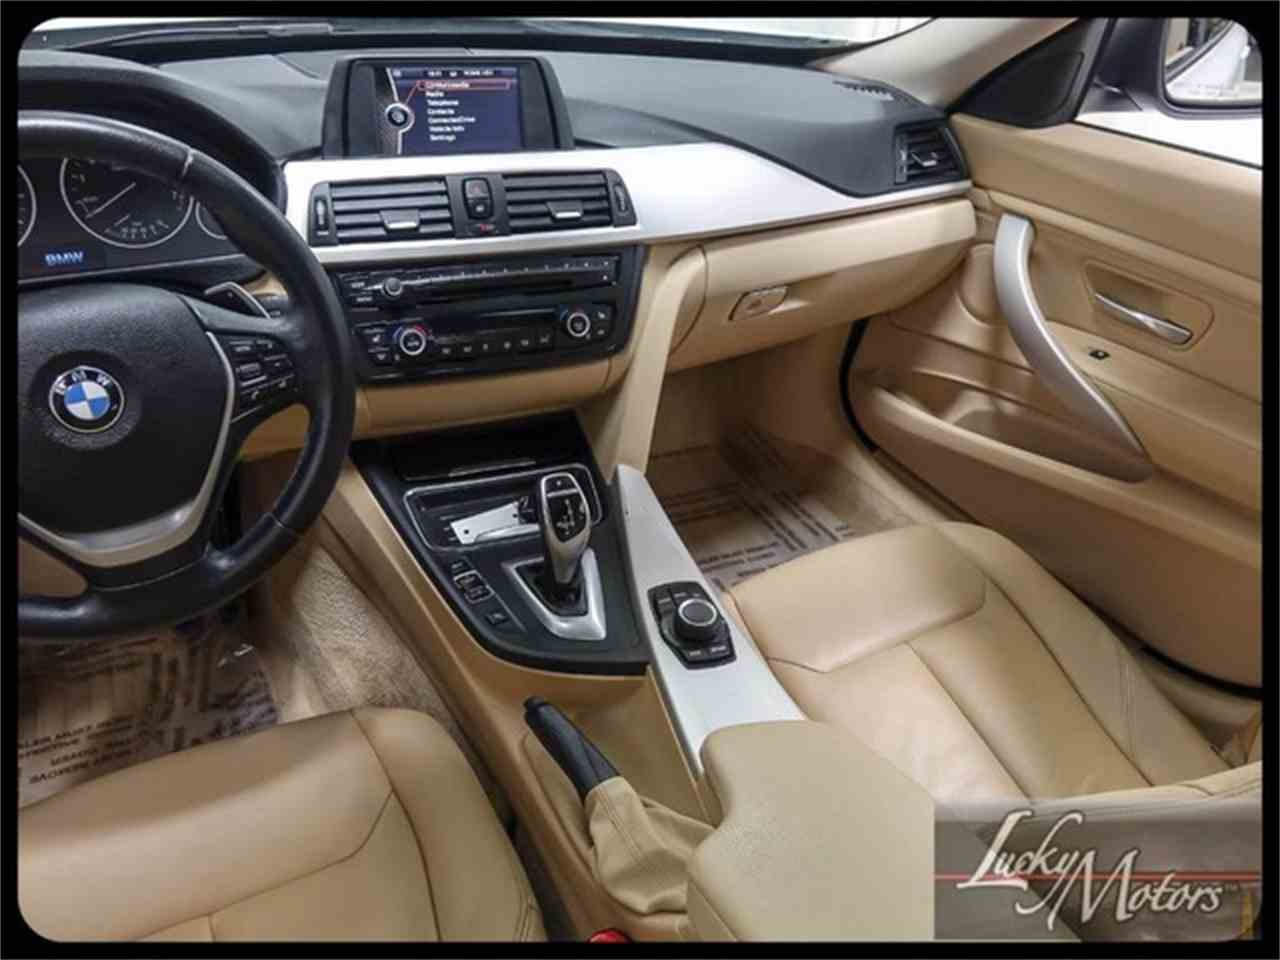 Large Picture of '14 3 Series Gran Turismo located in Elmhurst Illinois - $24,490.00 - JSK9